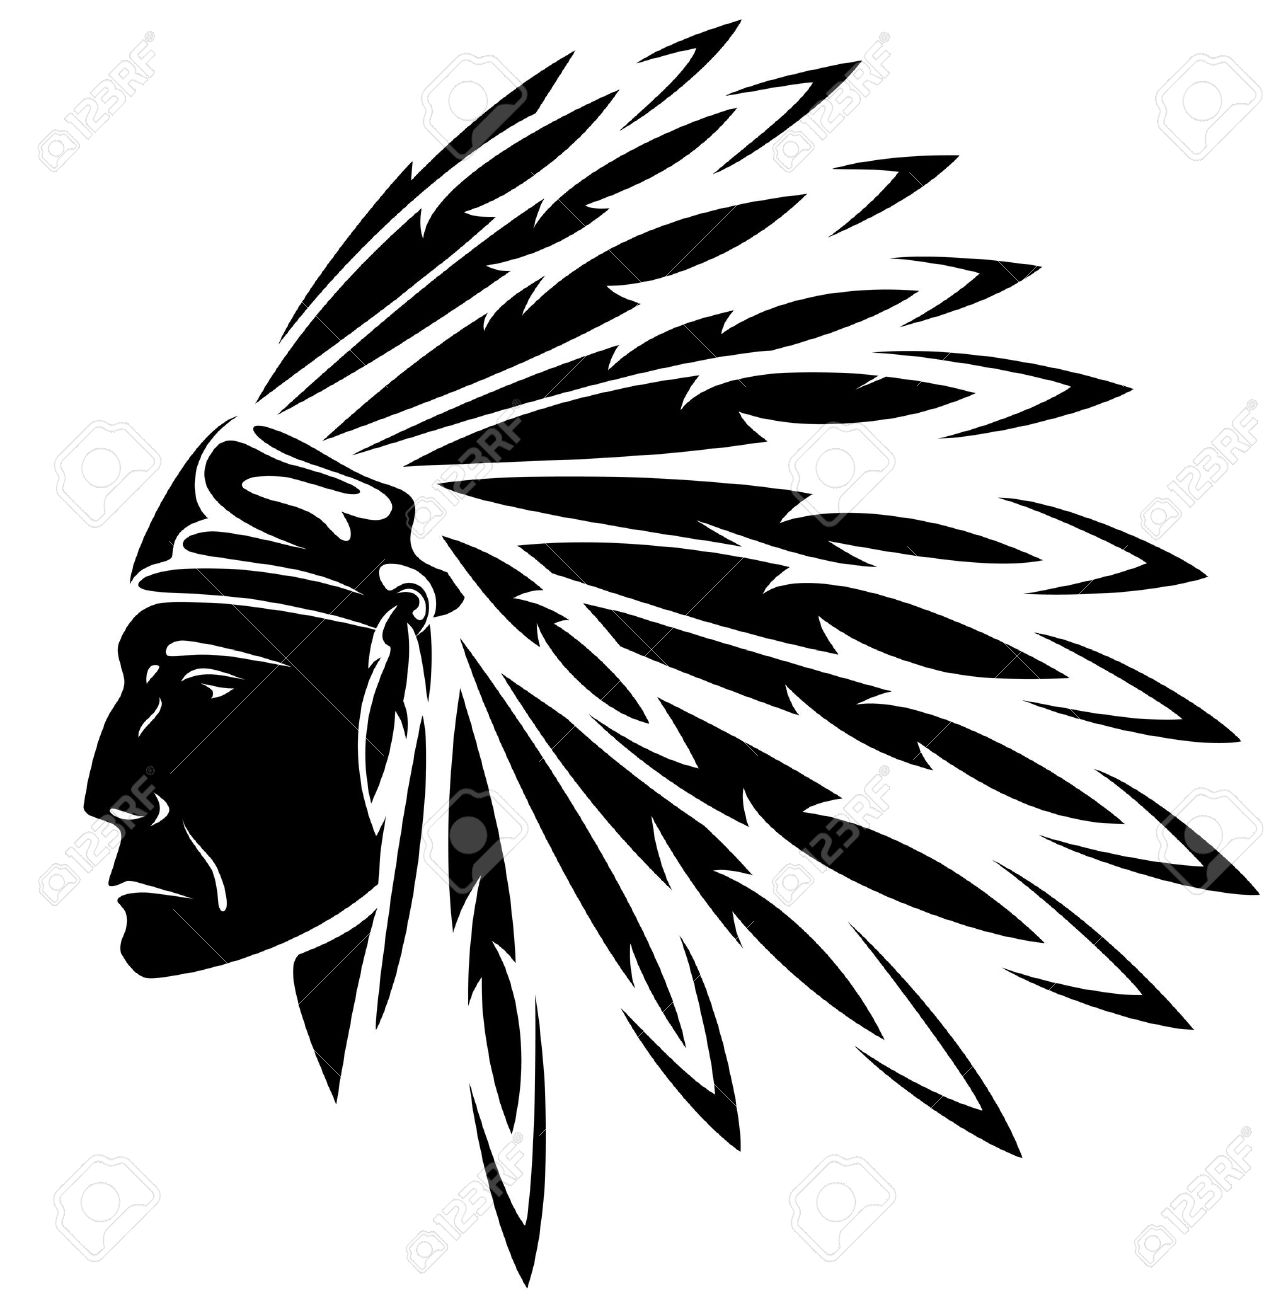 red indian chief black and white illustration royalty free cliparts rh 123rf com  indian headdress clip art free